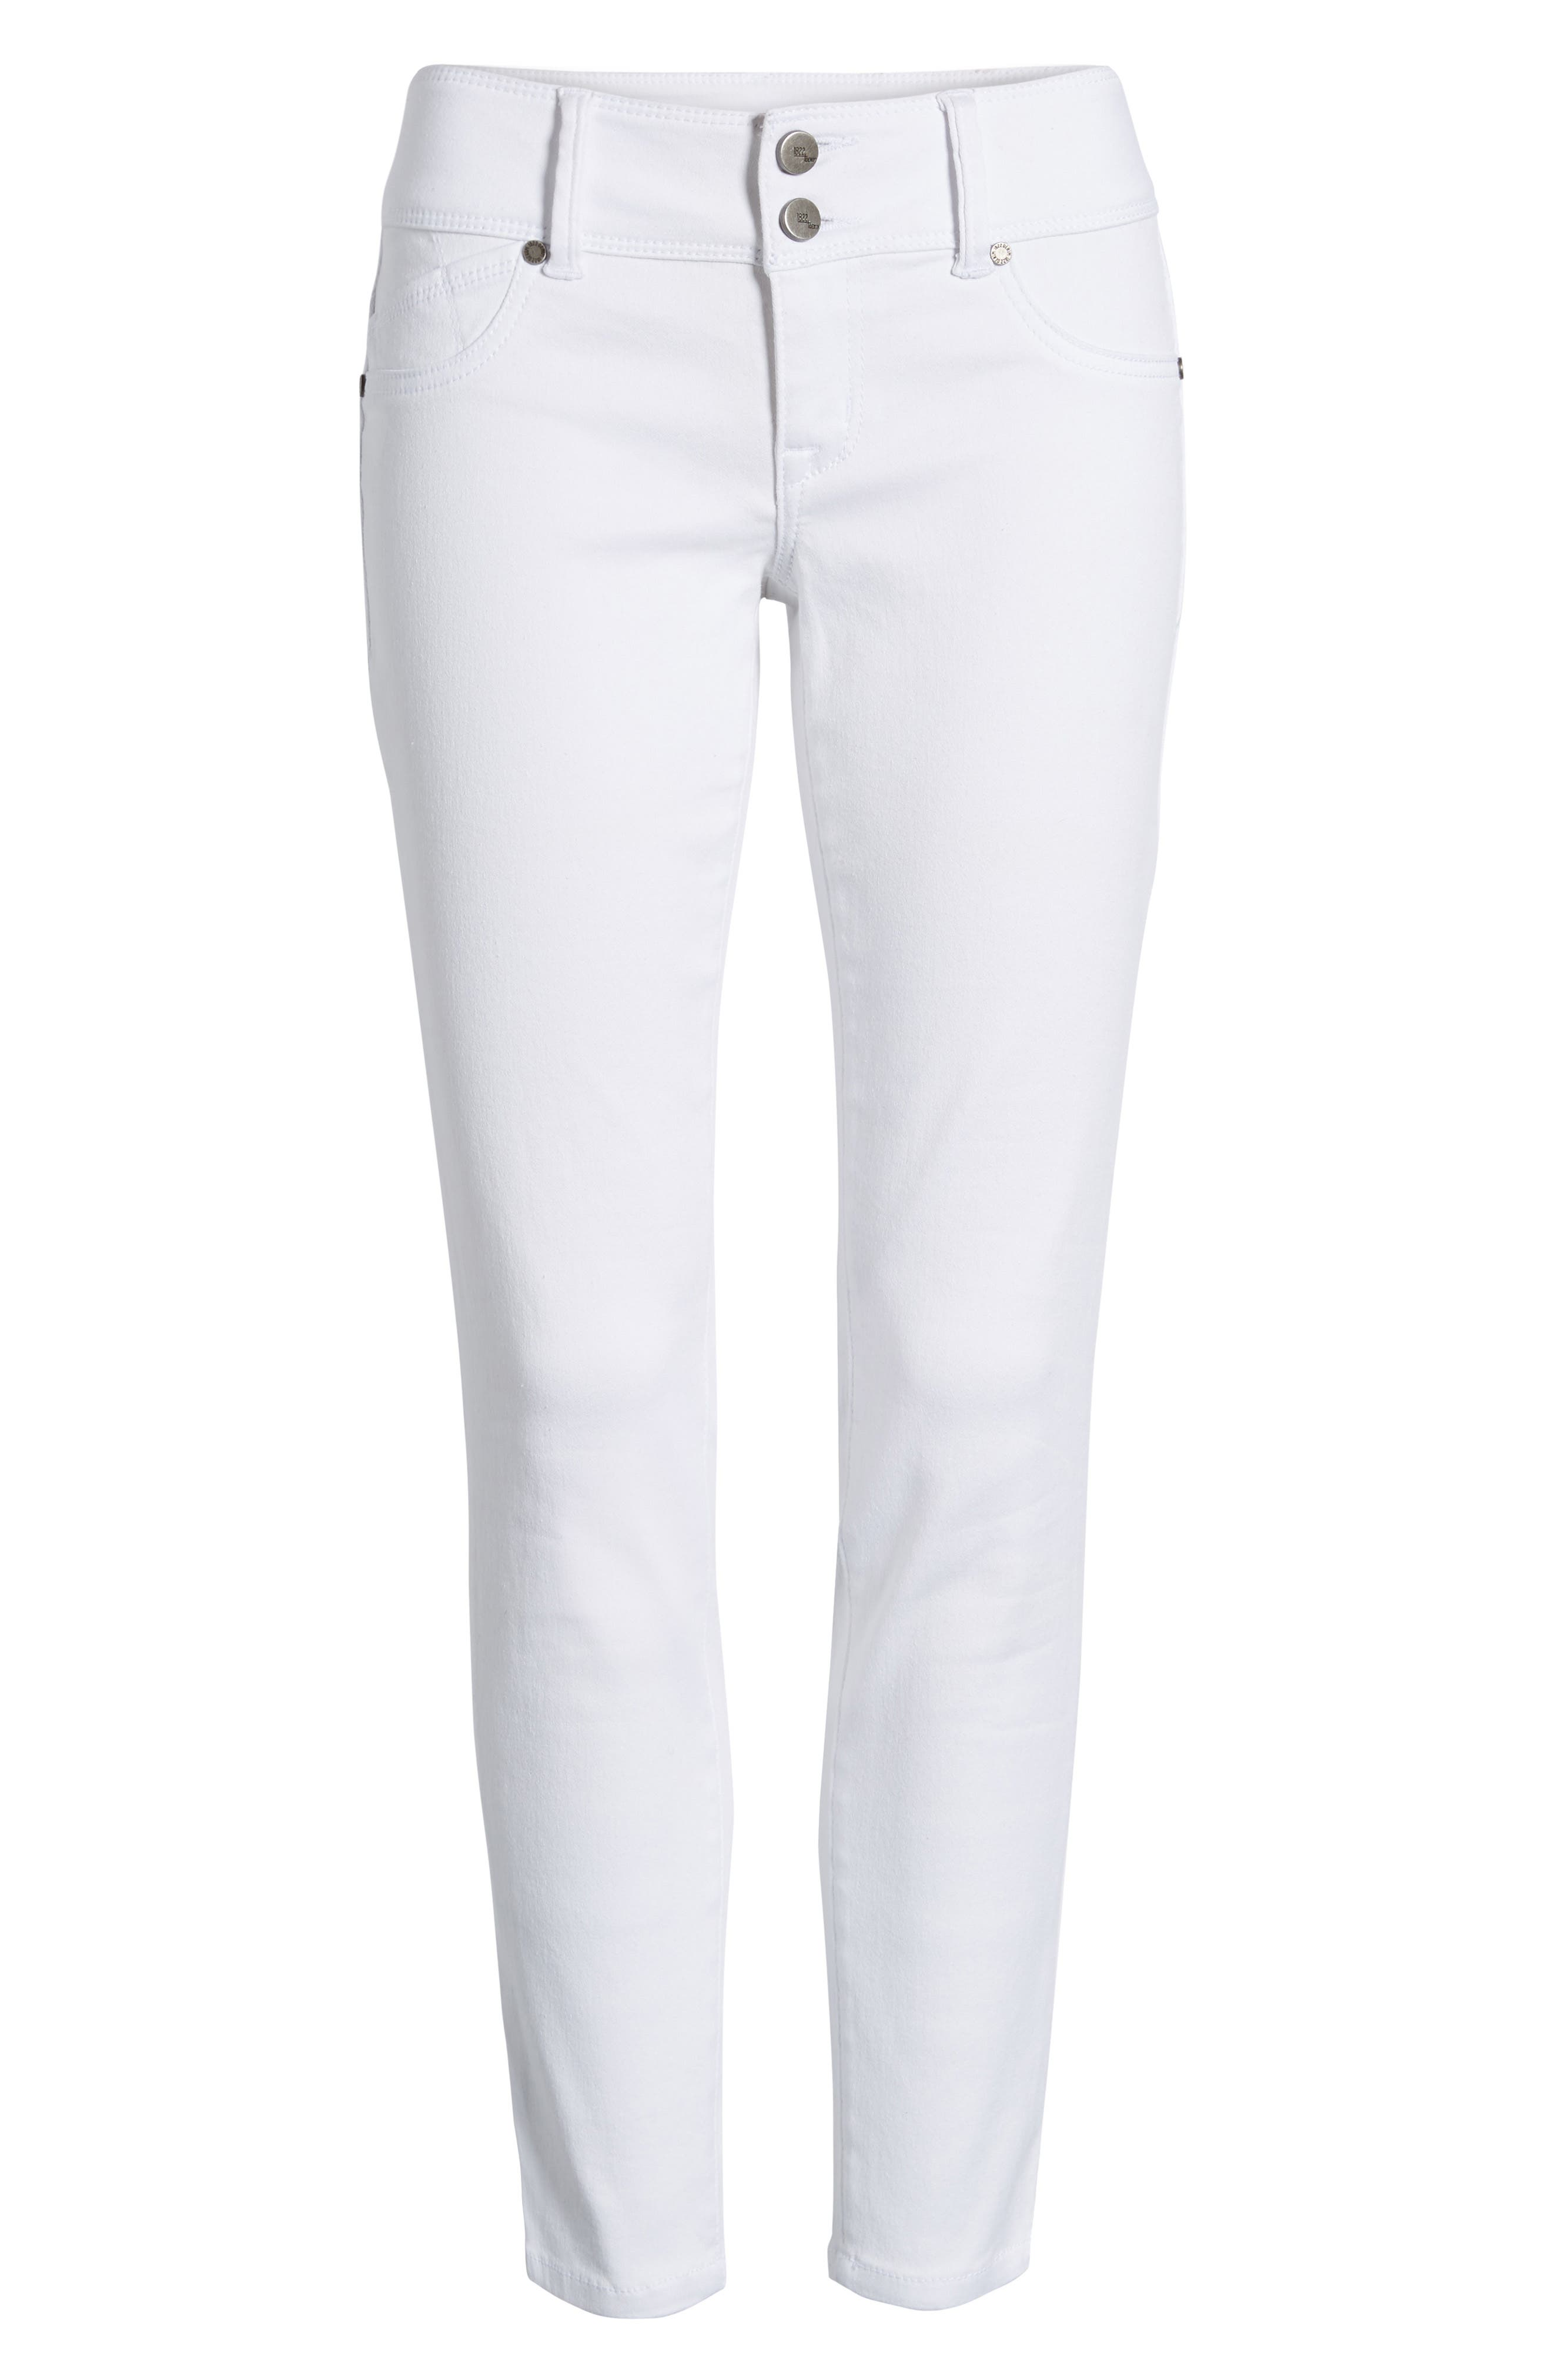 Double Button Skinny Jeans,                             Alternate thumbnail 6, color,                             White